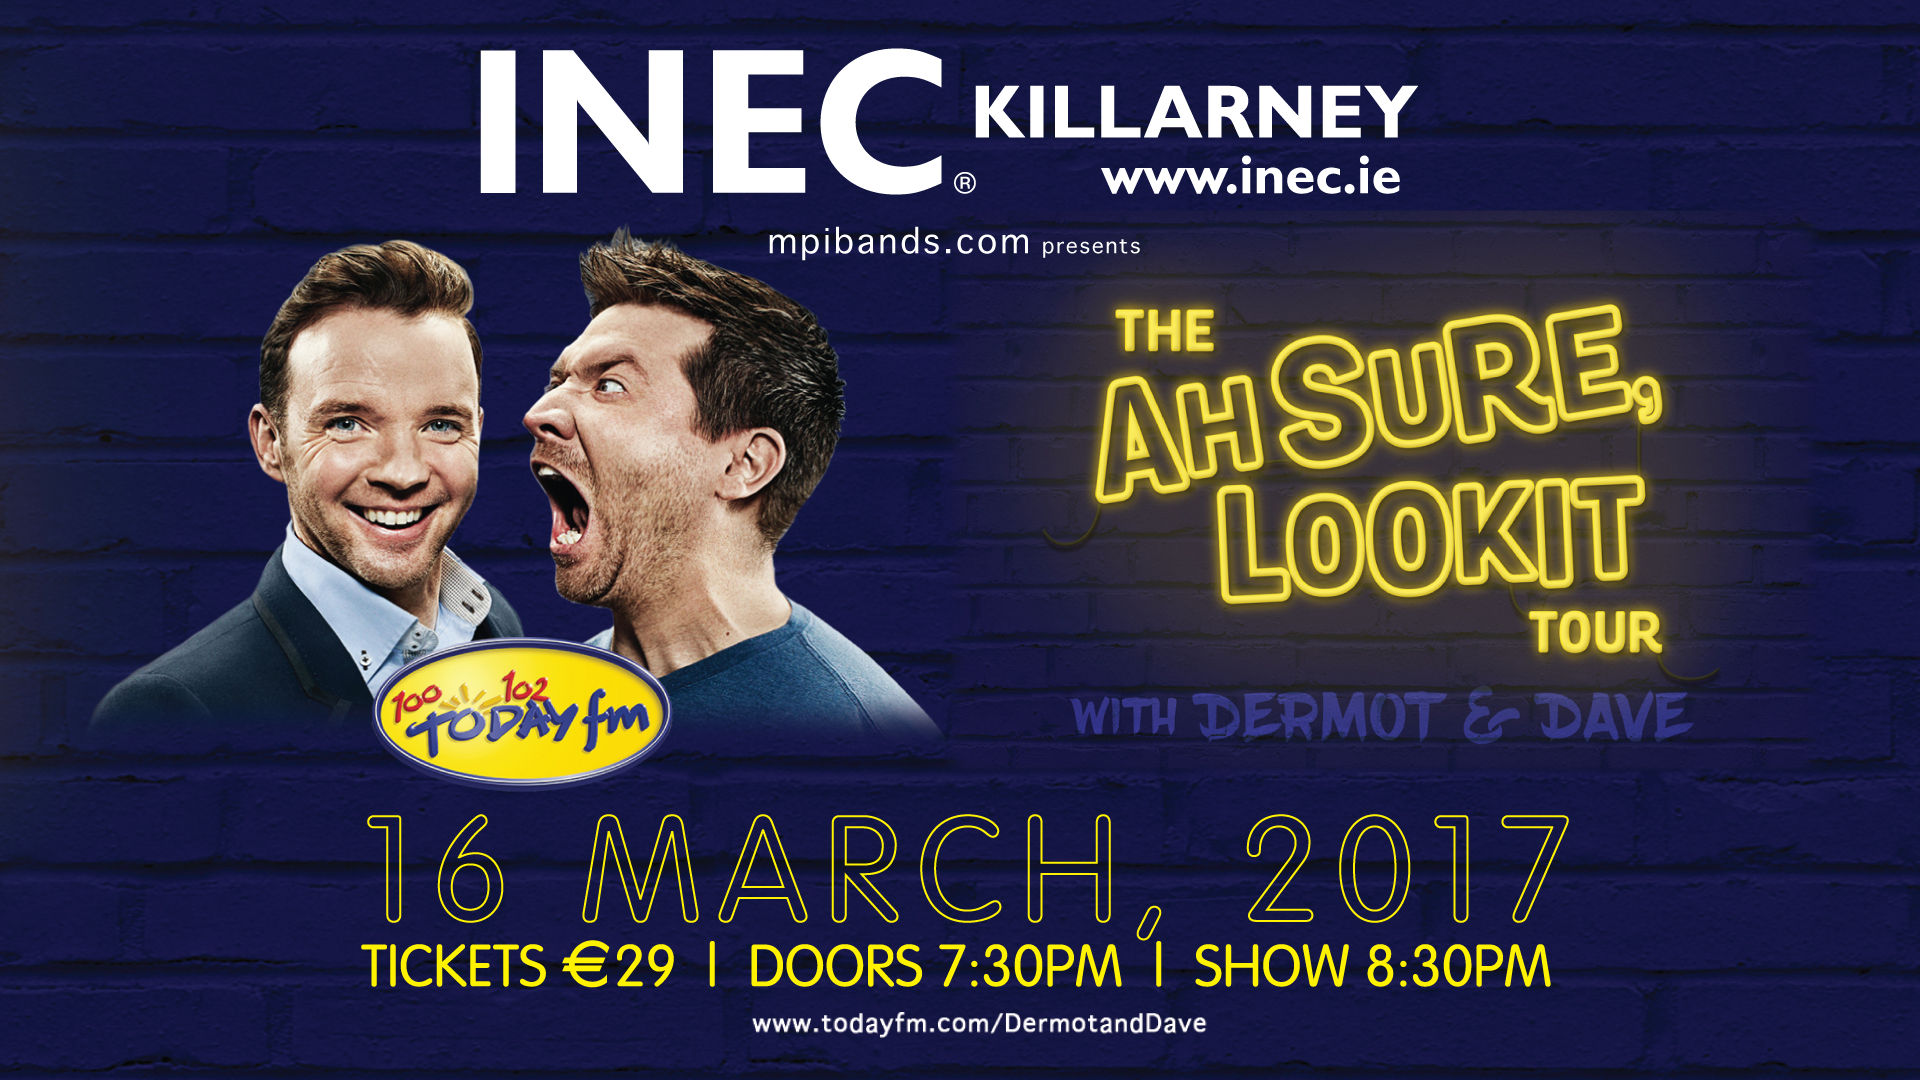 Dermot & Dave Ah Sure look it tour comes to the INEC Killarney,